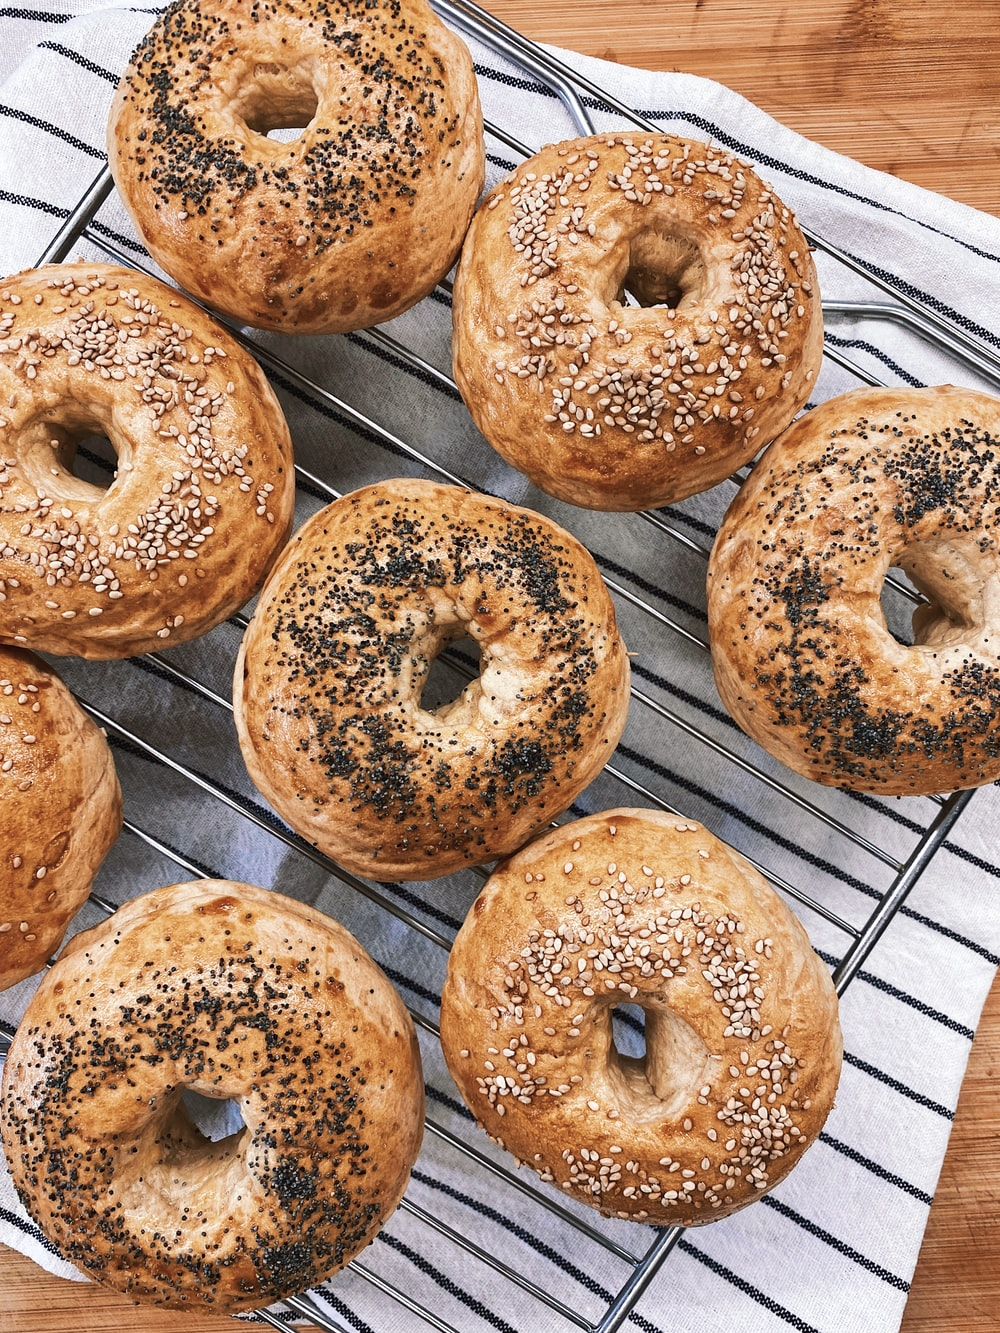 doughnuts on stainless steel tray